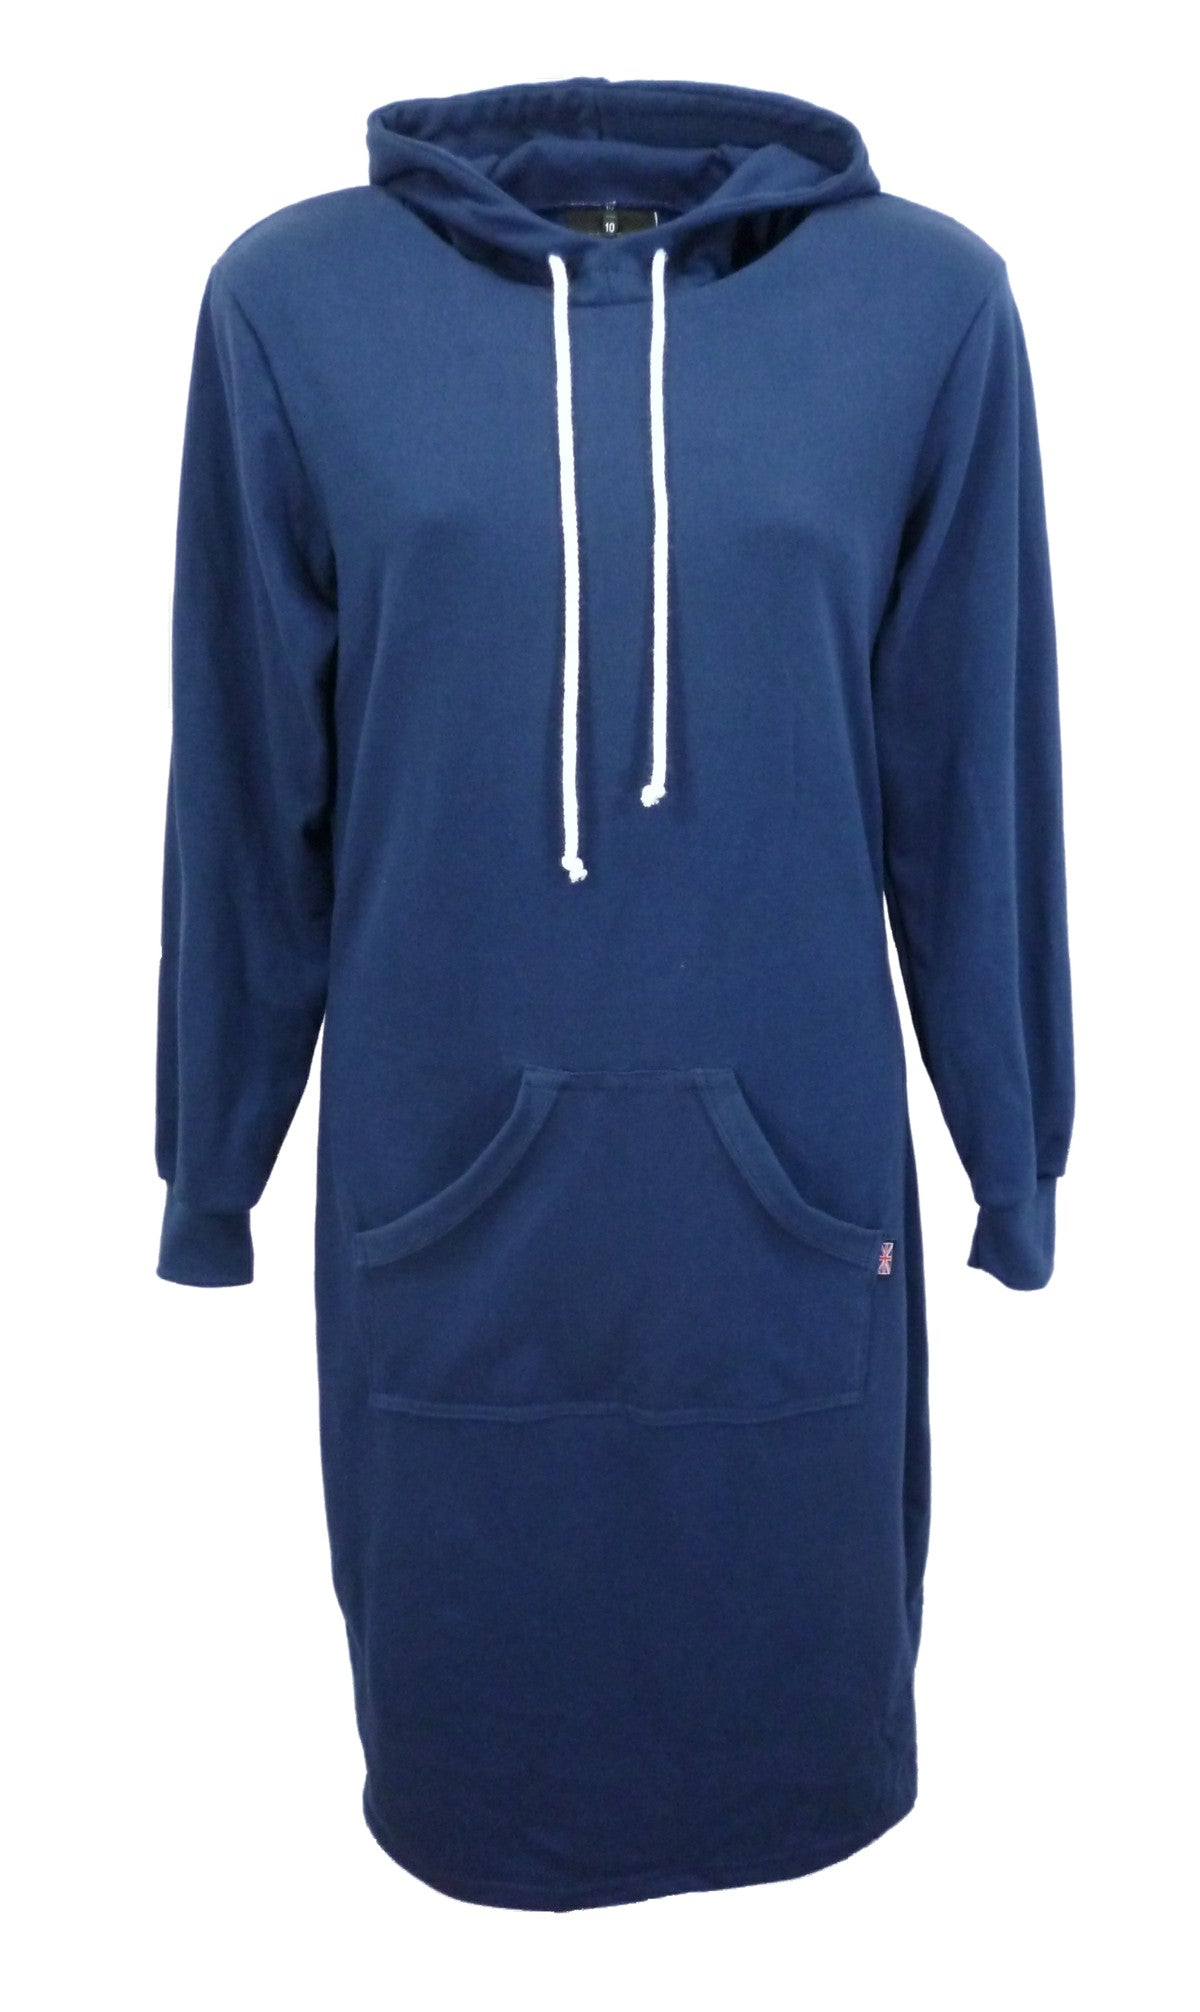 Navy long sleeve hooded jersey dress, made in England